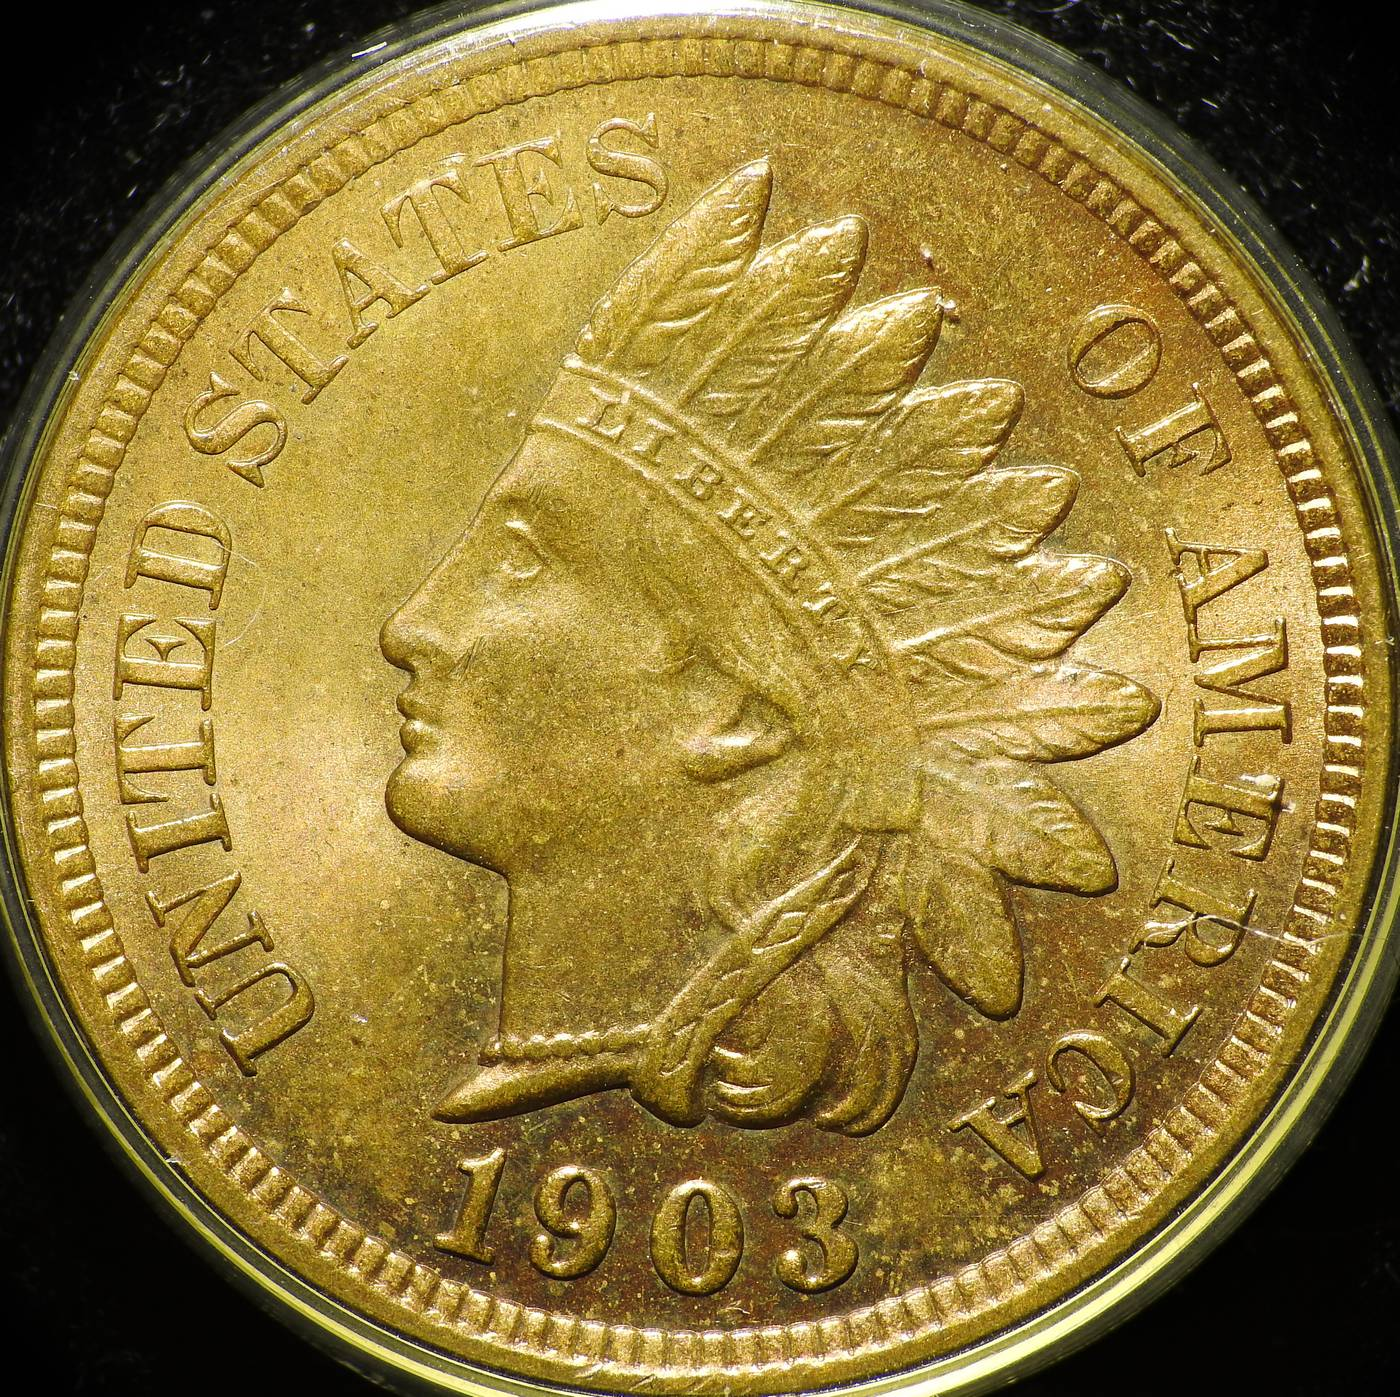 1903 RPD-019 - Indian Head Penny